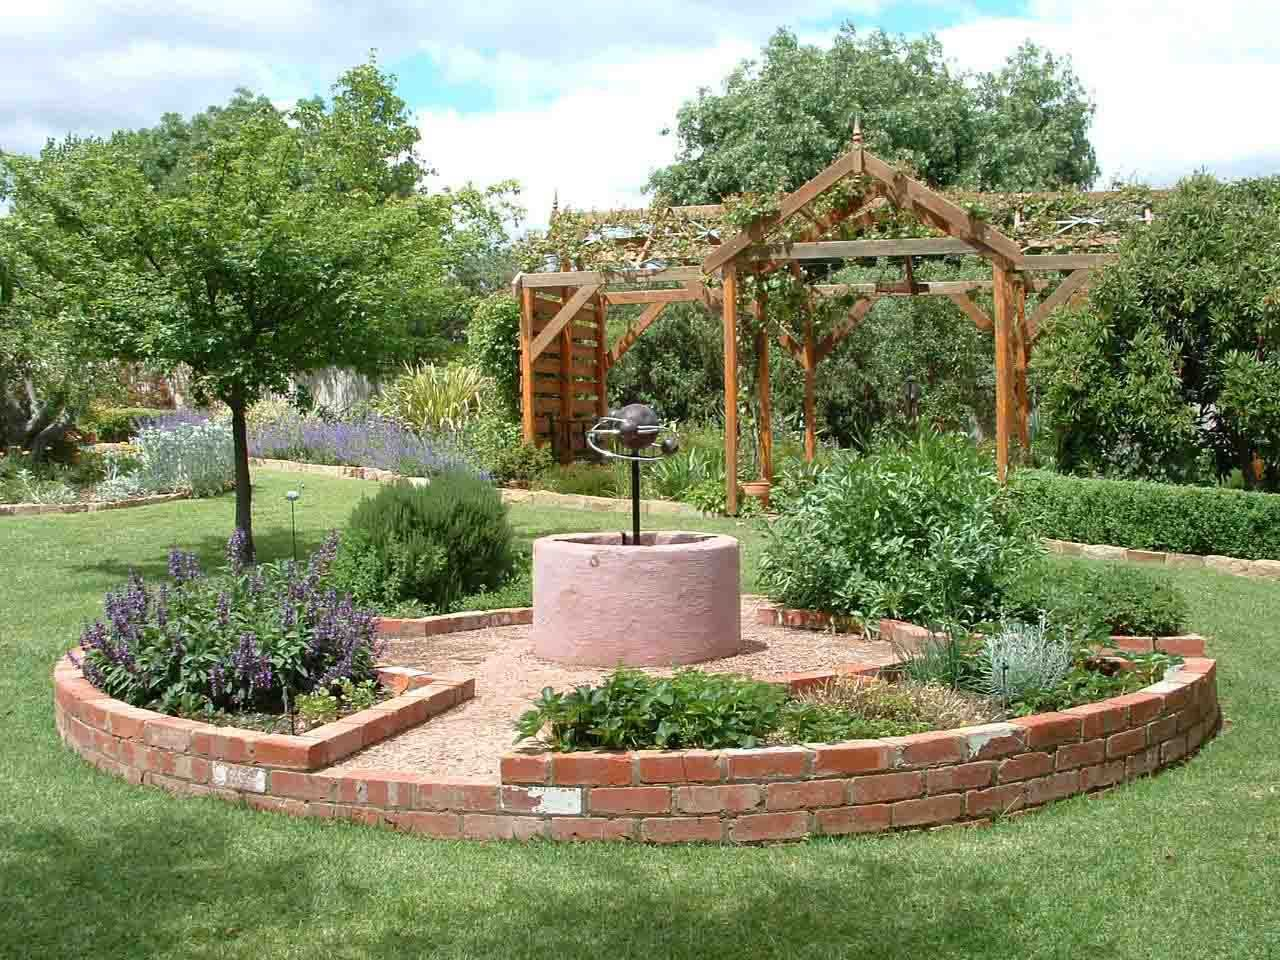 Farm landscape design ideas the clothesline movement and for Create your own garden design